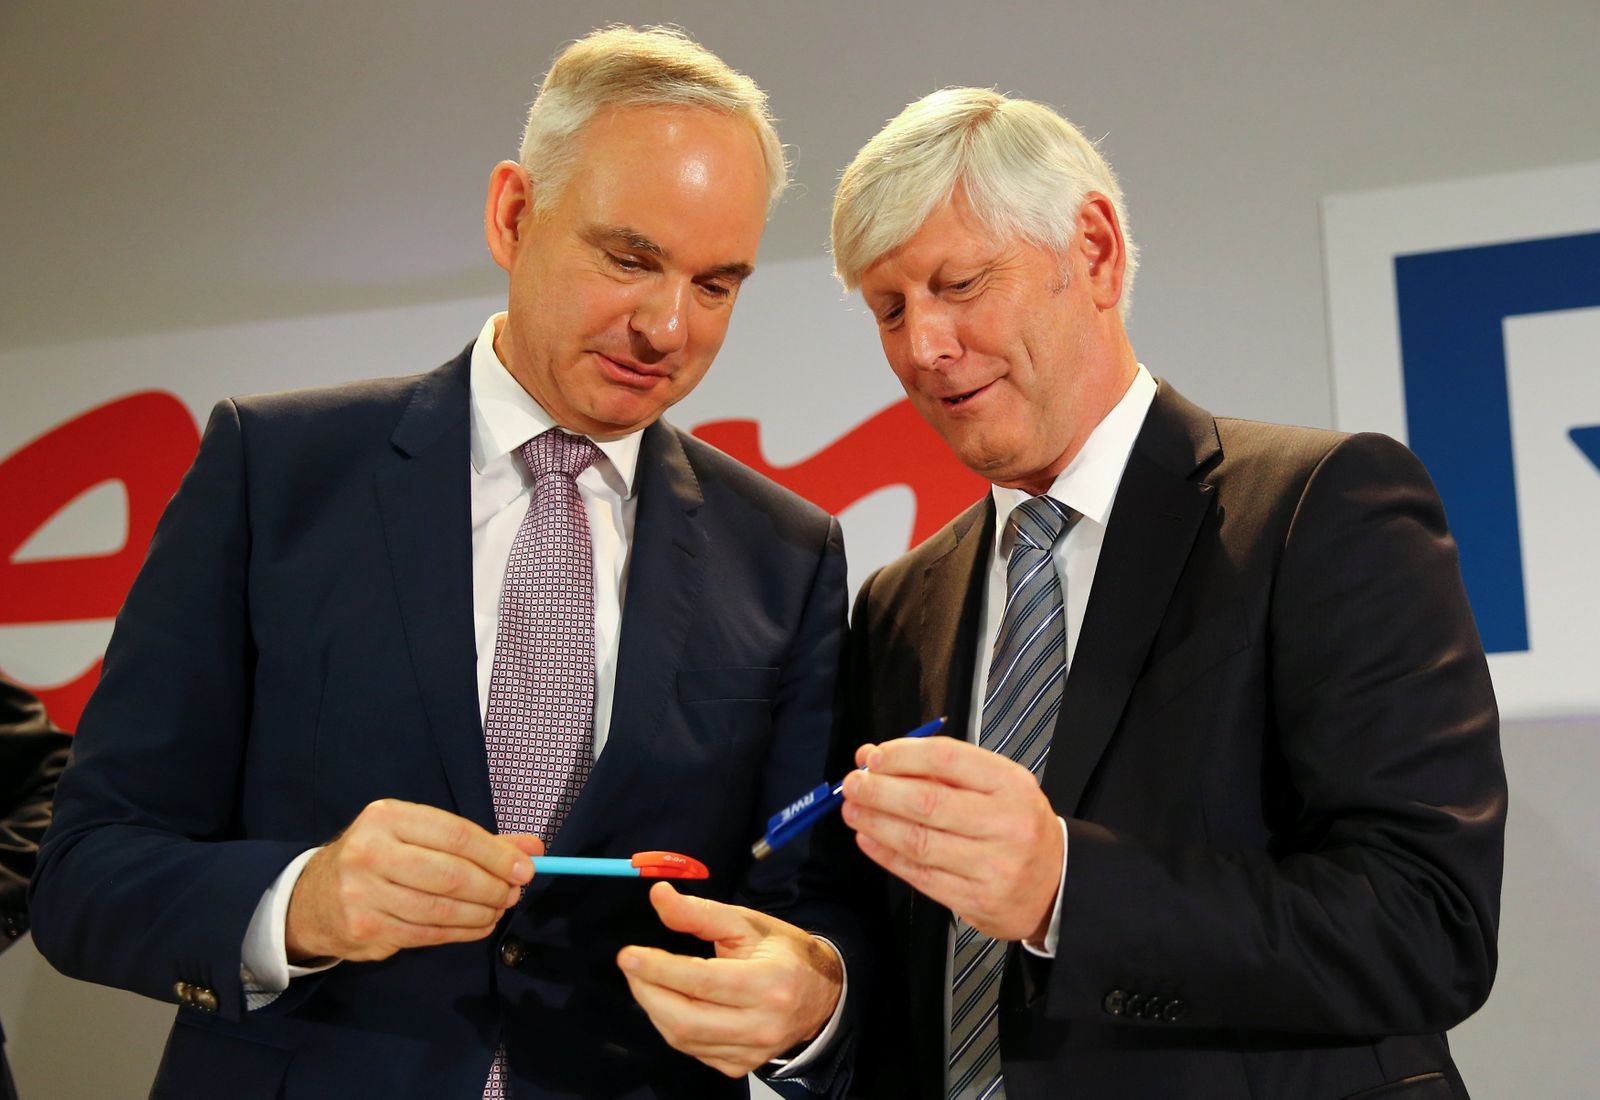 RWE and E.On CEOs Schmitz and Teyssen exchange pens following a news conference in Essen after unveiling plans for an asset swap between the two German utilities